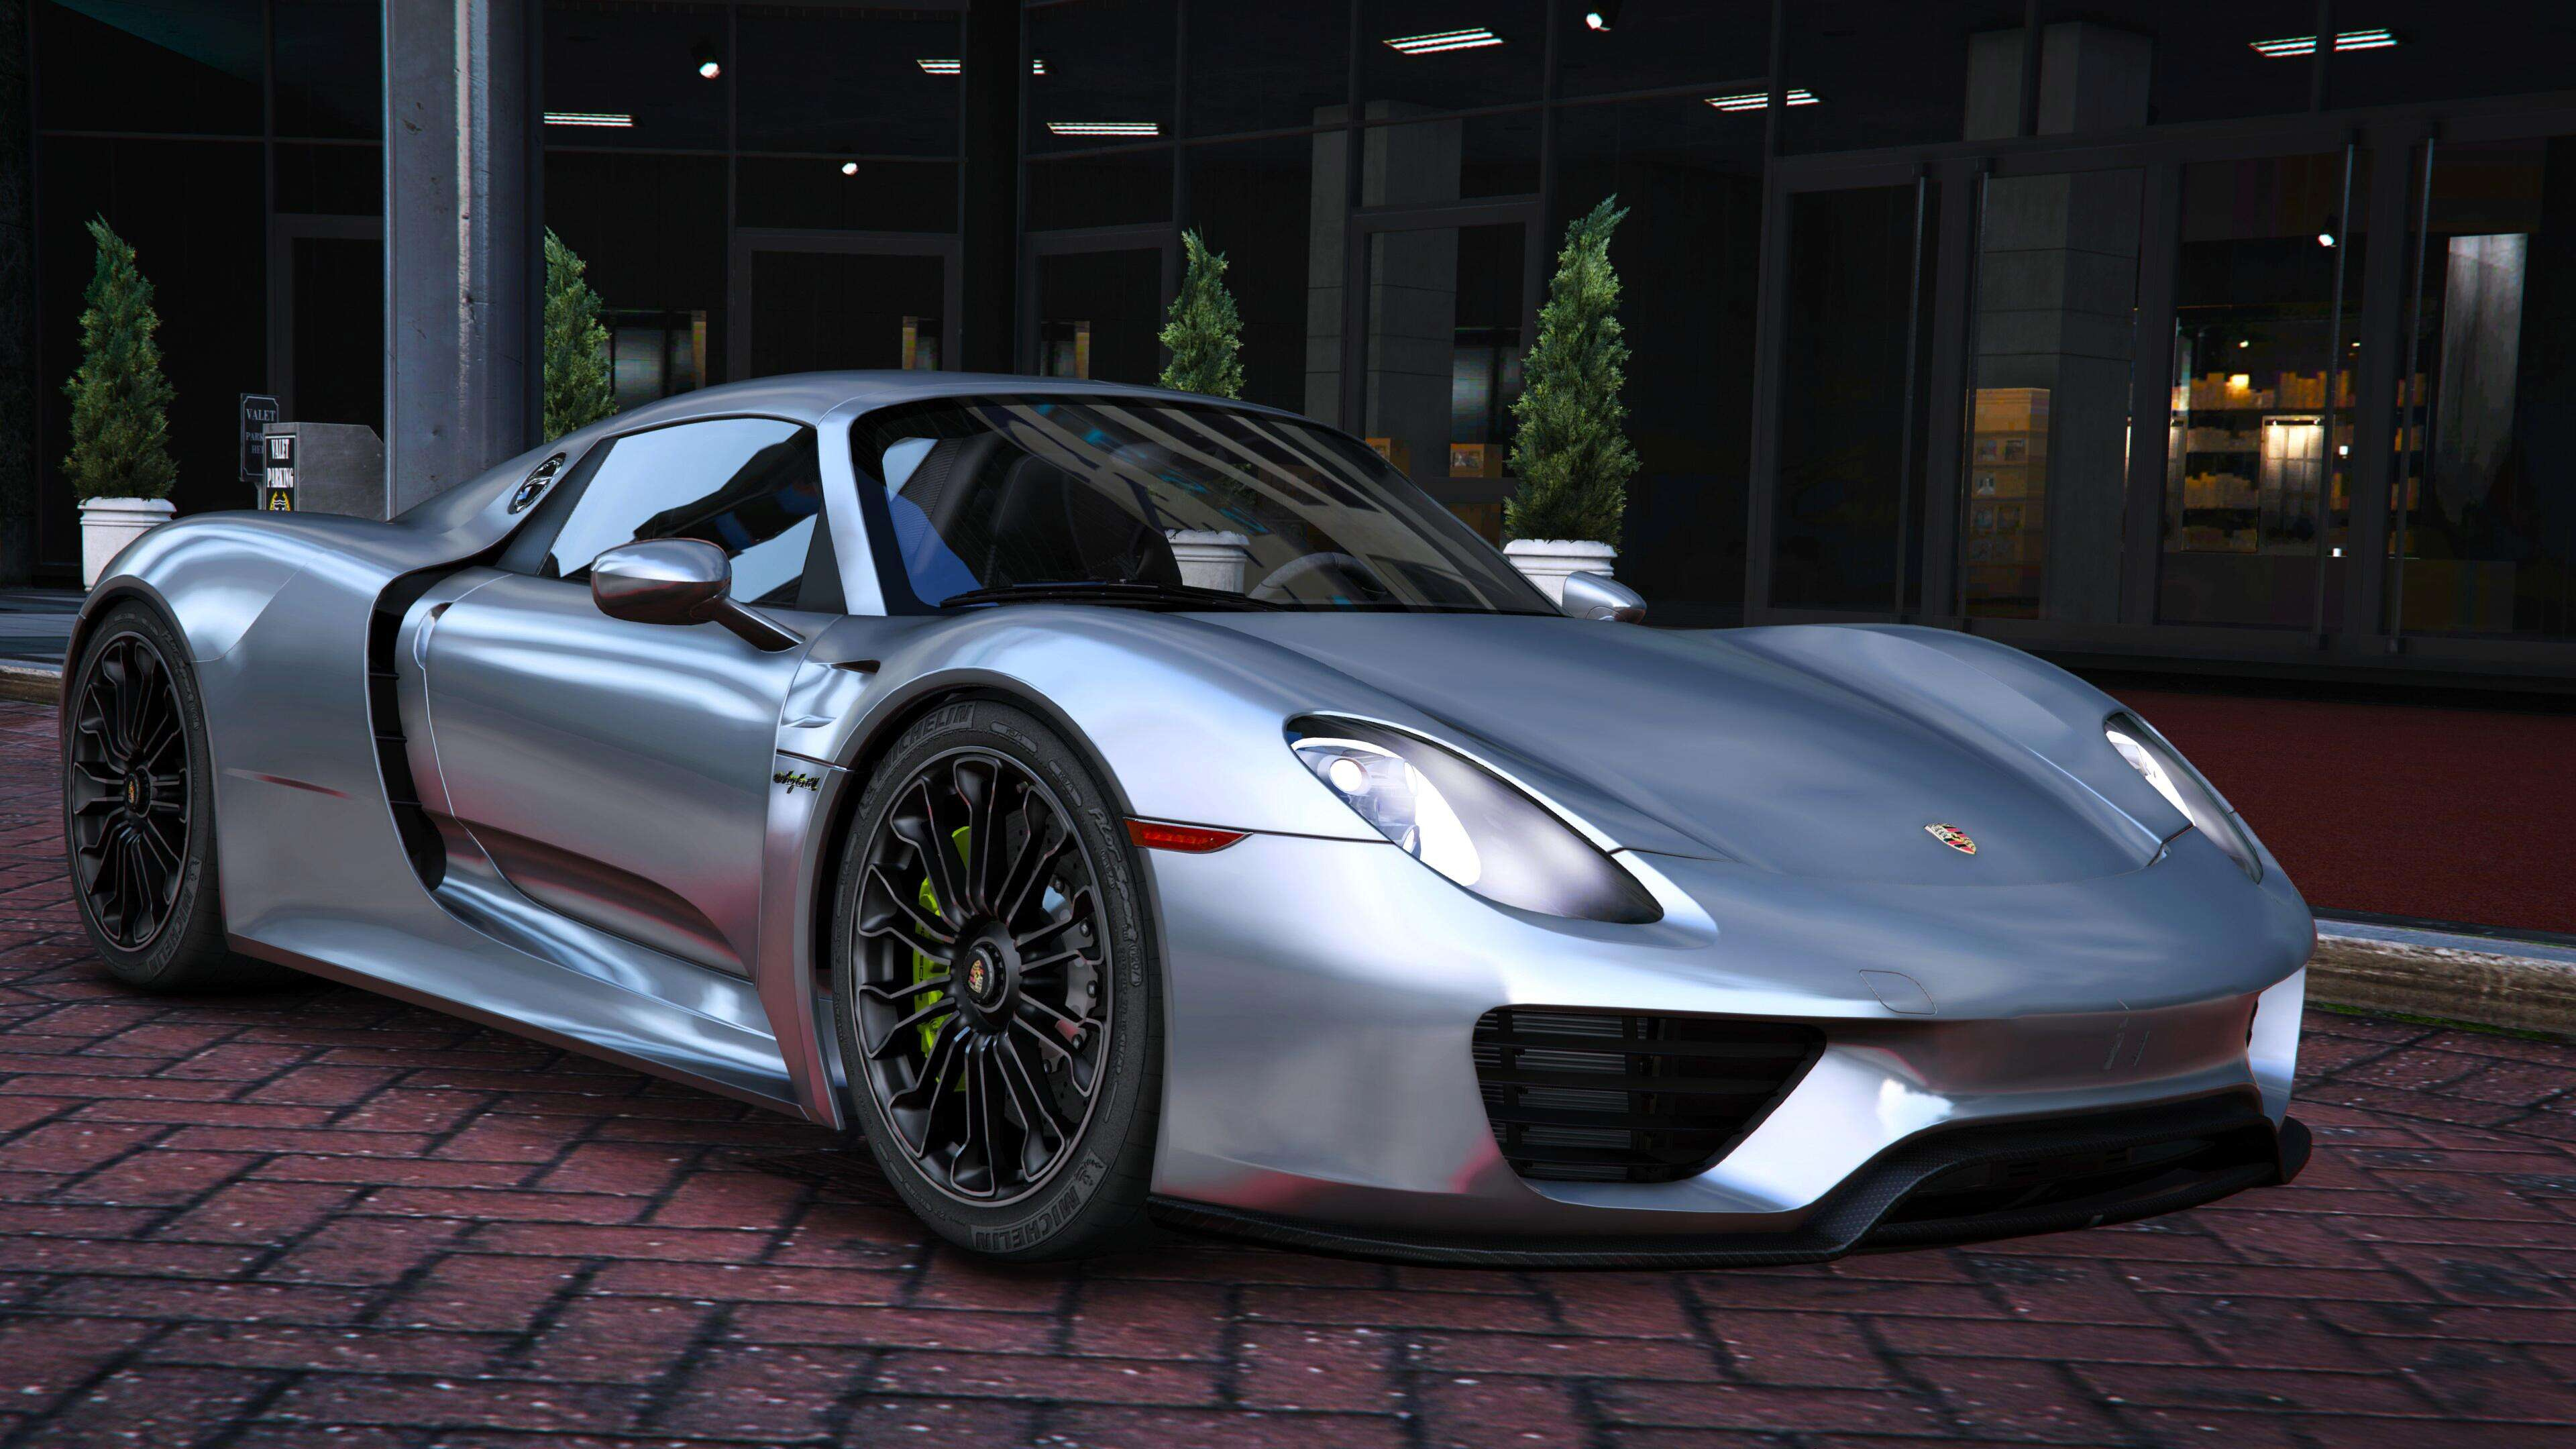 2015 porsche 918 spyder weissach kit add on real spoiler gta5 mod. Black Bedroom Furniture Sets. Home Design Ideas